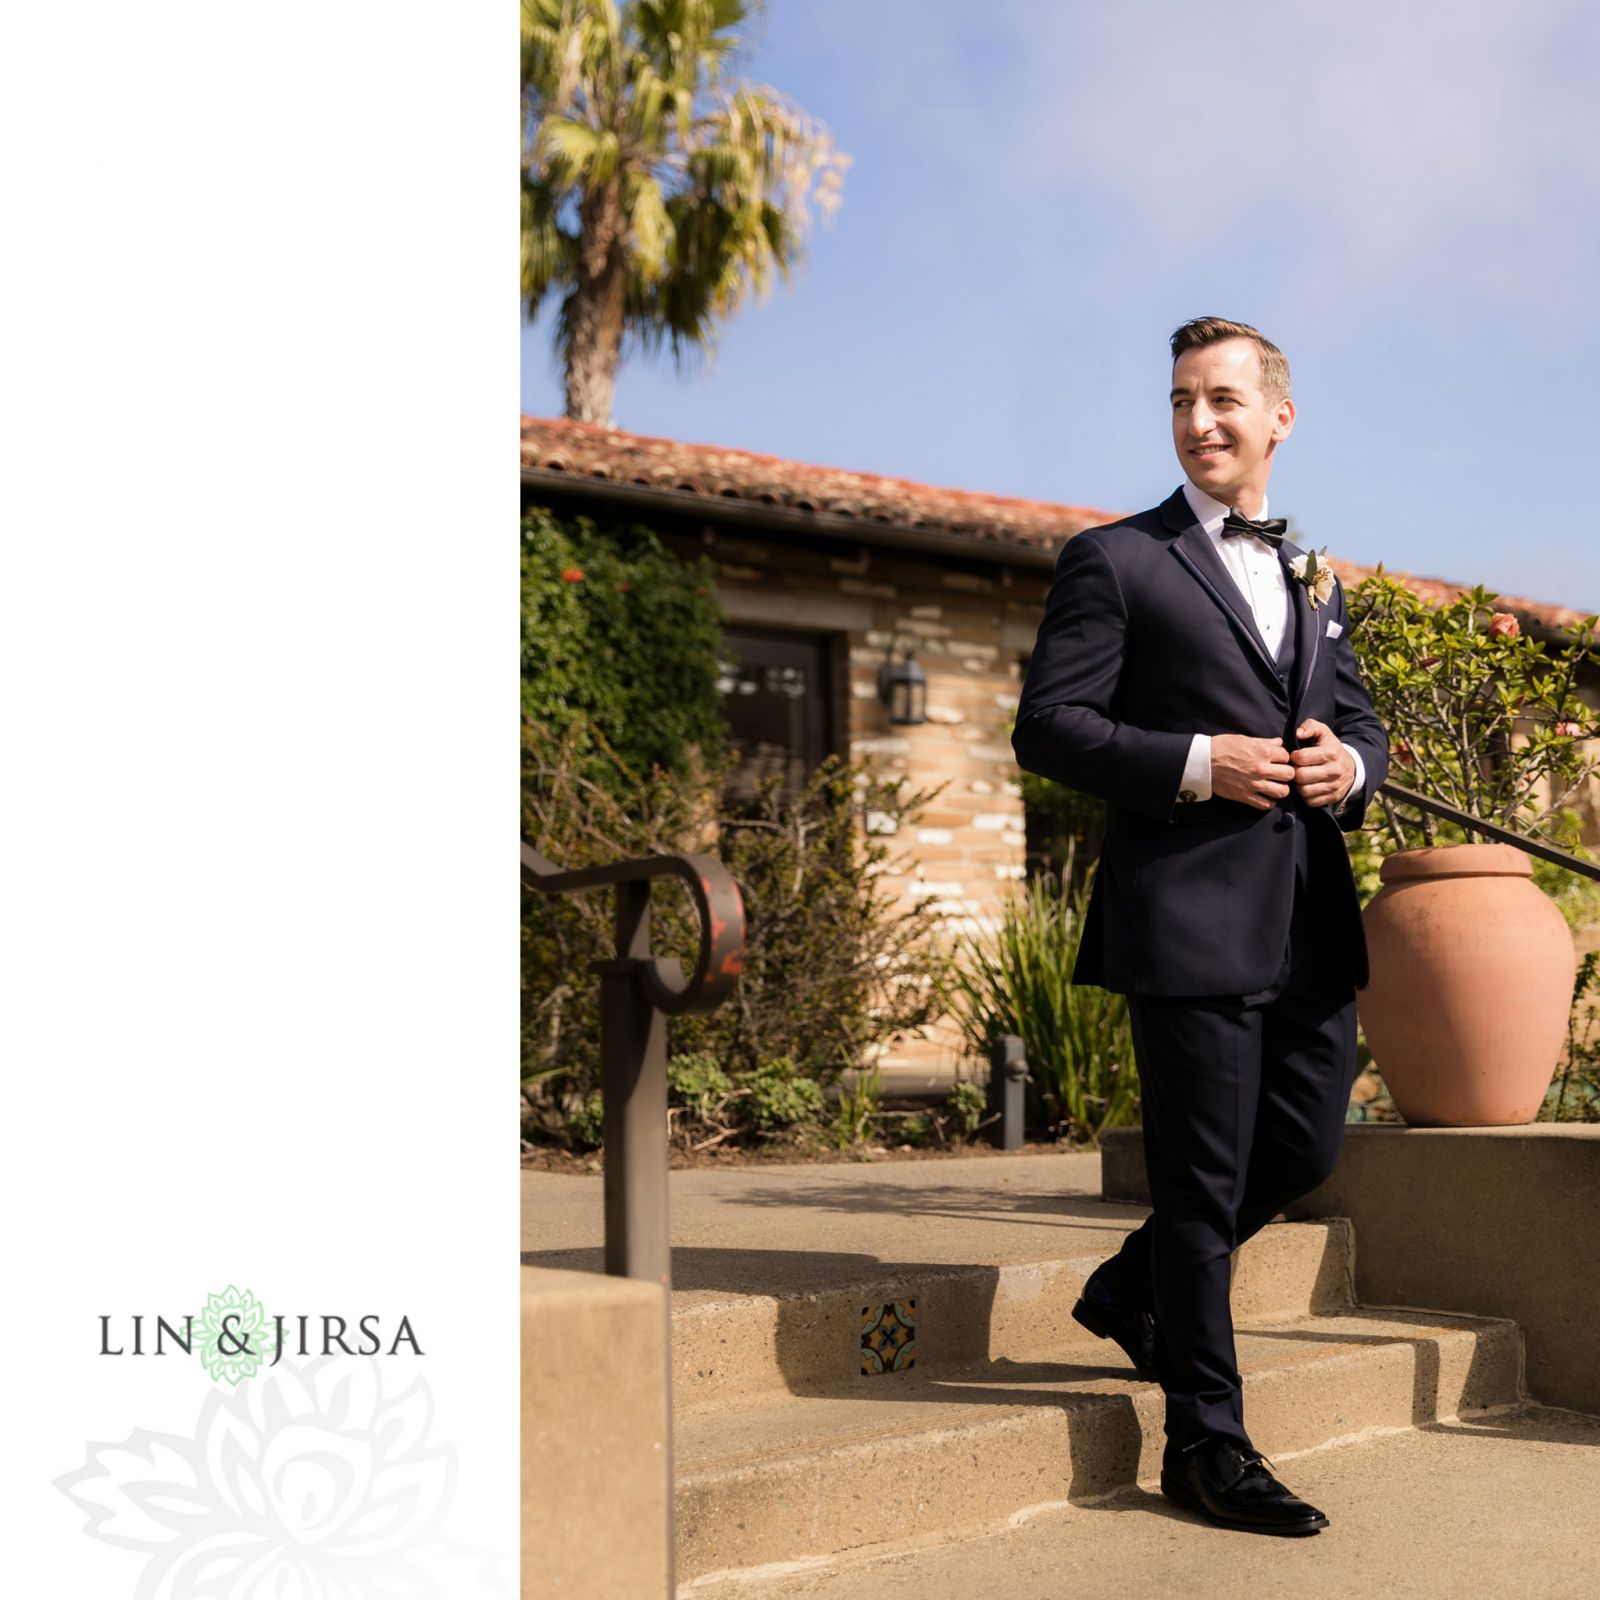 Groom ready to see his bride   at the Estancia Hotel in La Jolla. Wedding Day Beauty by Vanity Belle in Orange County (Costa Mesa) and San Diego (La Jolla) thevanitybelle.com. Photography by Lin and Jirsa.